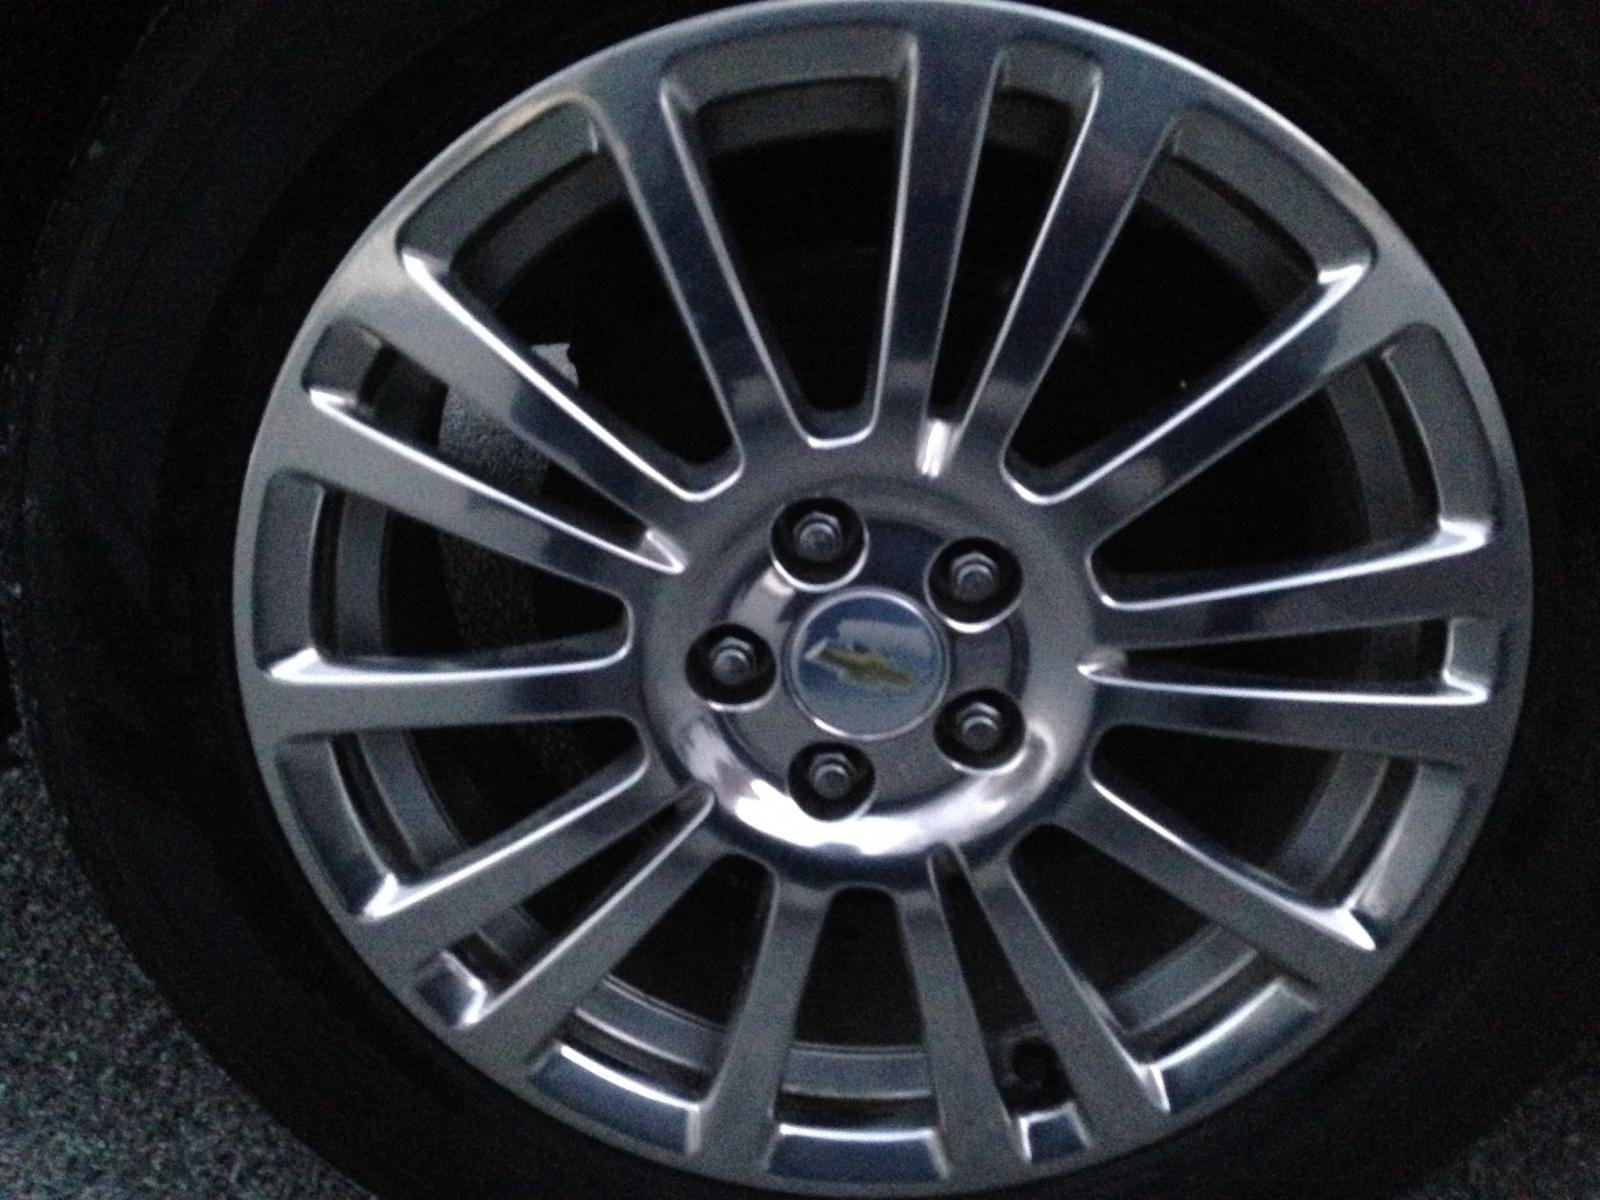 2012 chevy cruze Eco RIMS for sale or trade, W/Tires/TPMS ...